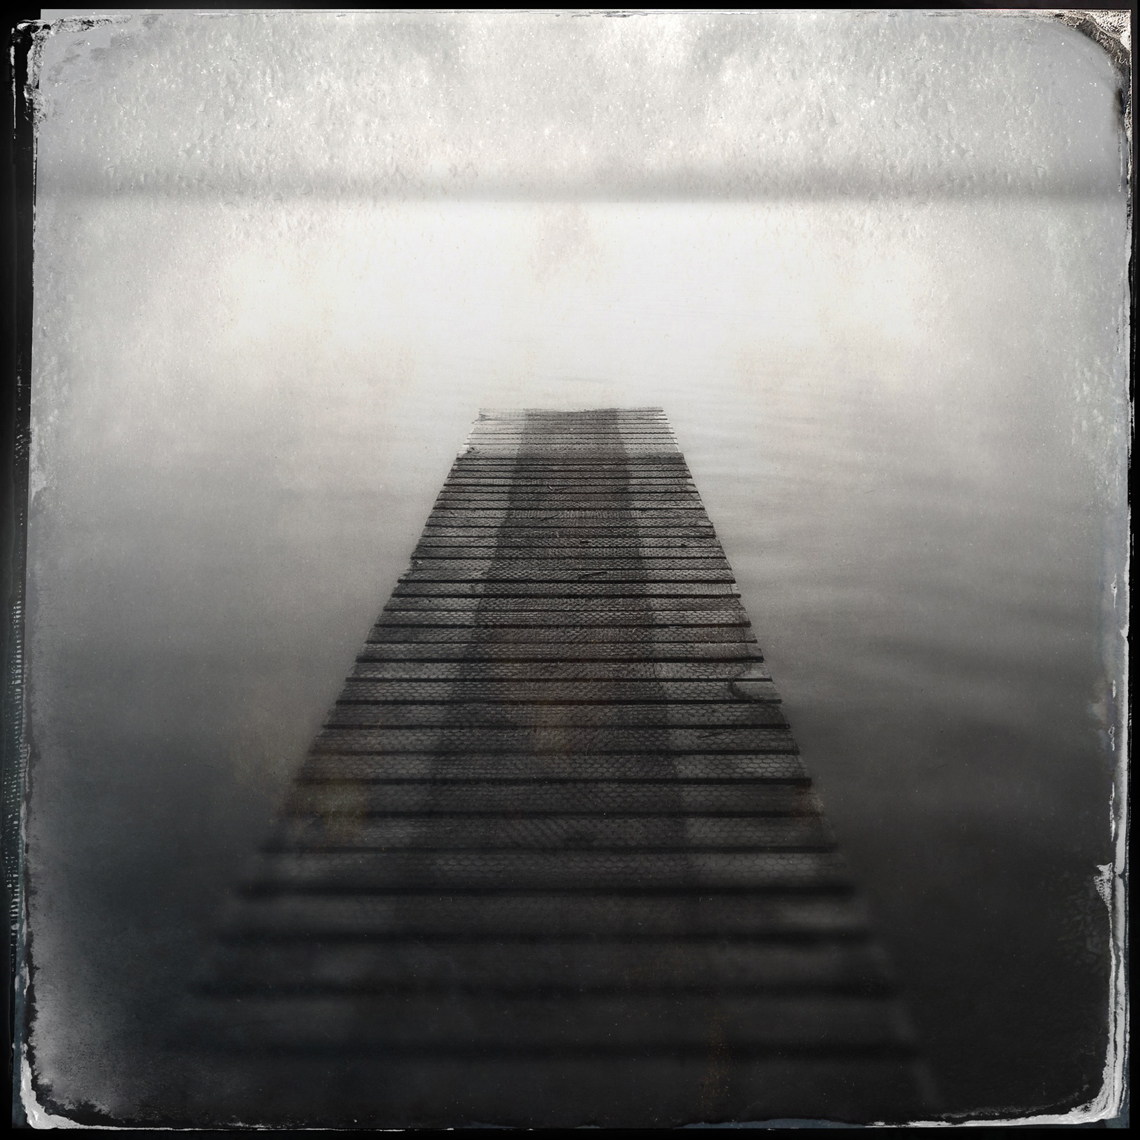 Jon Wyatt Photography - Pontoon in lake, New Zealand. Hipstamatic